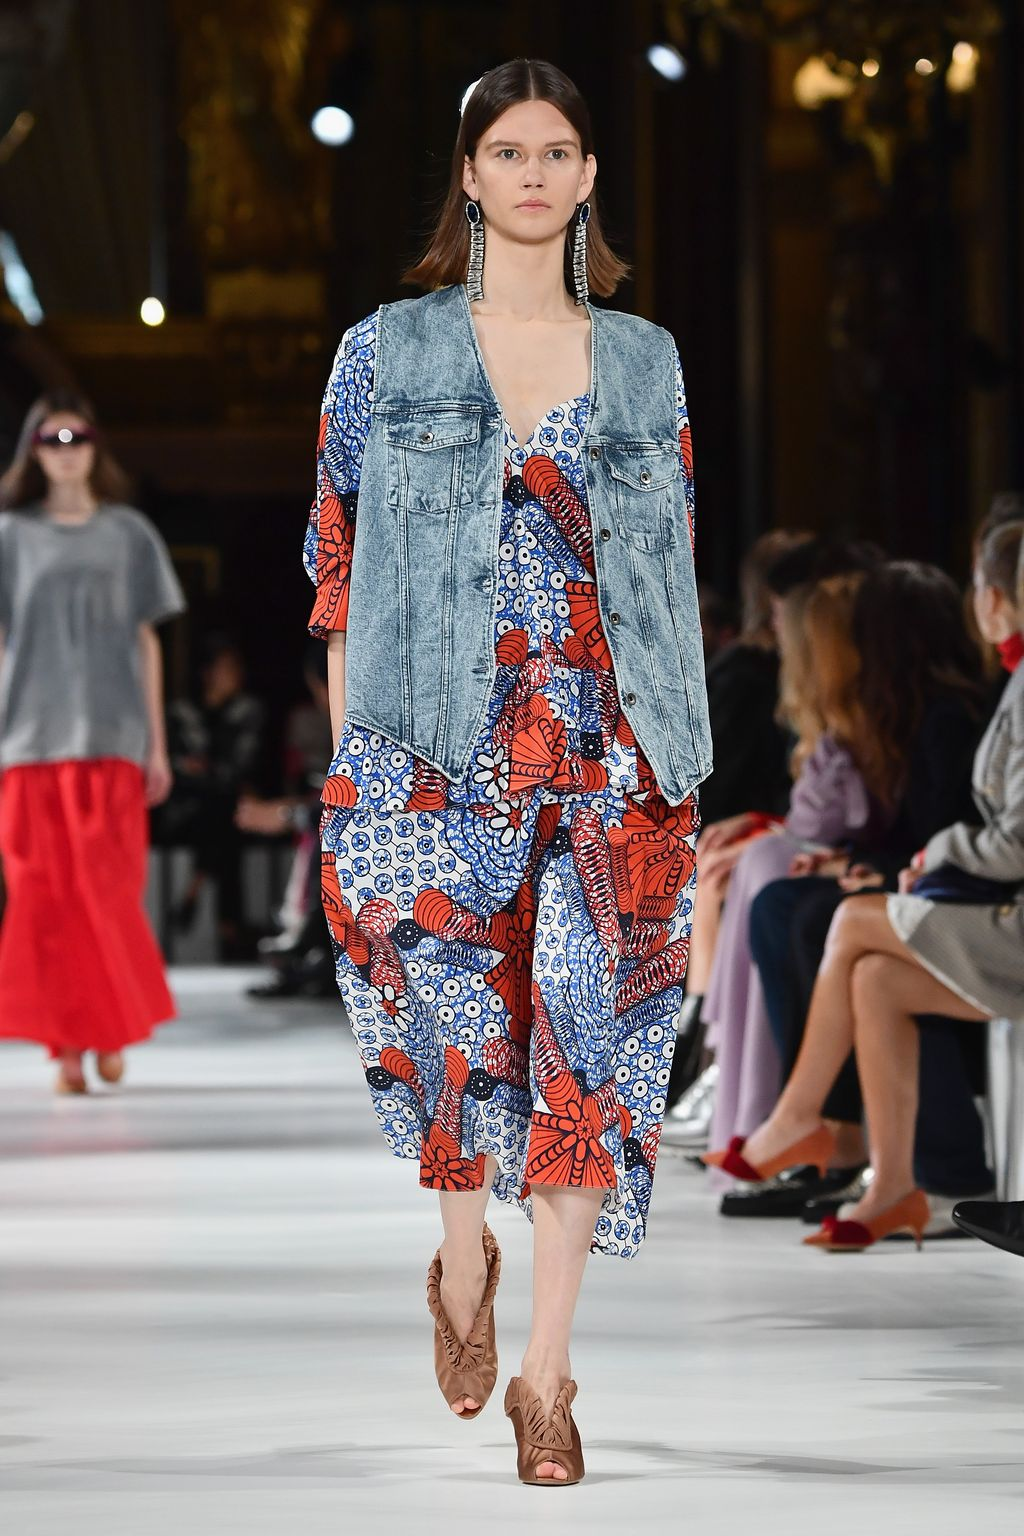 PARIS, FRANCE - OCTOBER 02:  A model walks the runway during the Stella McCartney show as part of the Paris Fashion Week Womenswear Spring/Summer 2018 on October 2, 2017 in Paris, France.  (Photo by Pascal Le Segretain/Getty Images)